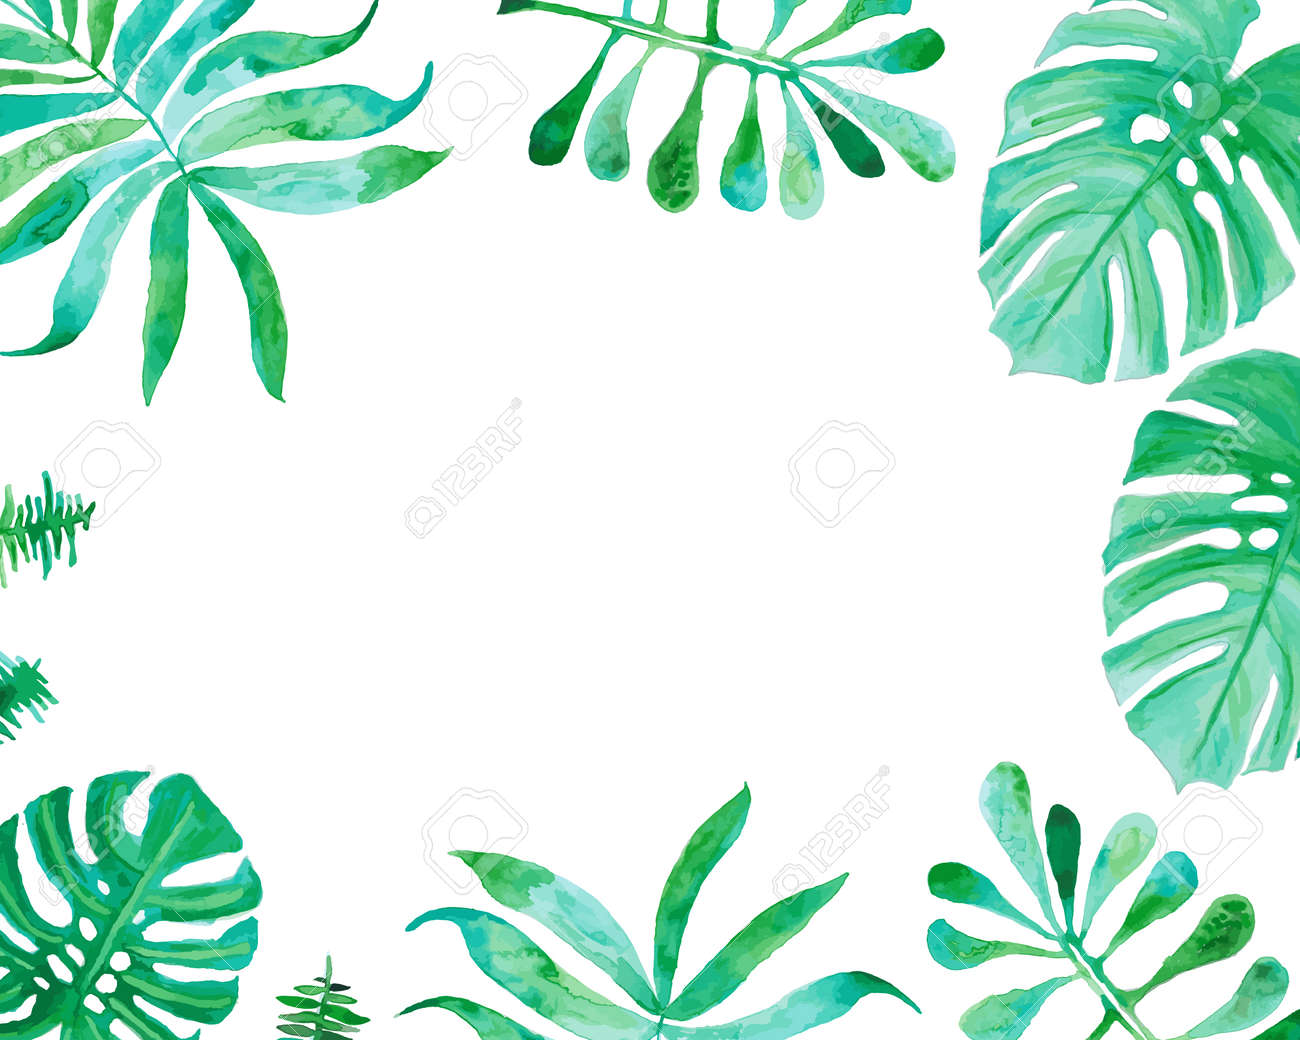 Watercolor Drawing Palm Trees Or Green Leaves Royalty Free Cliparts Vectors And Stock Illustration Image 56875344